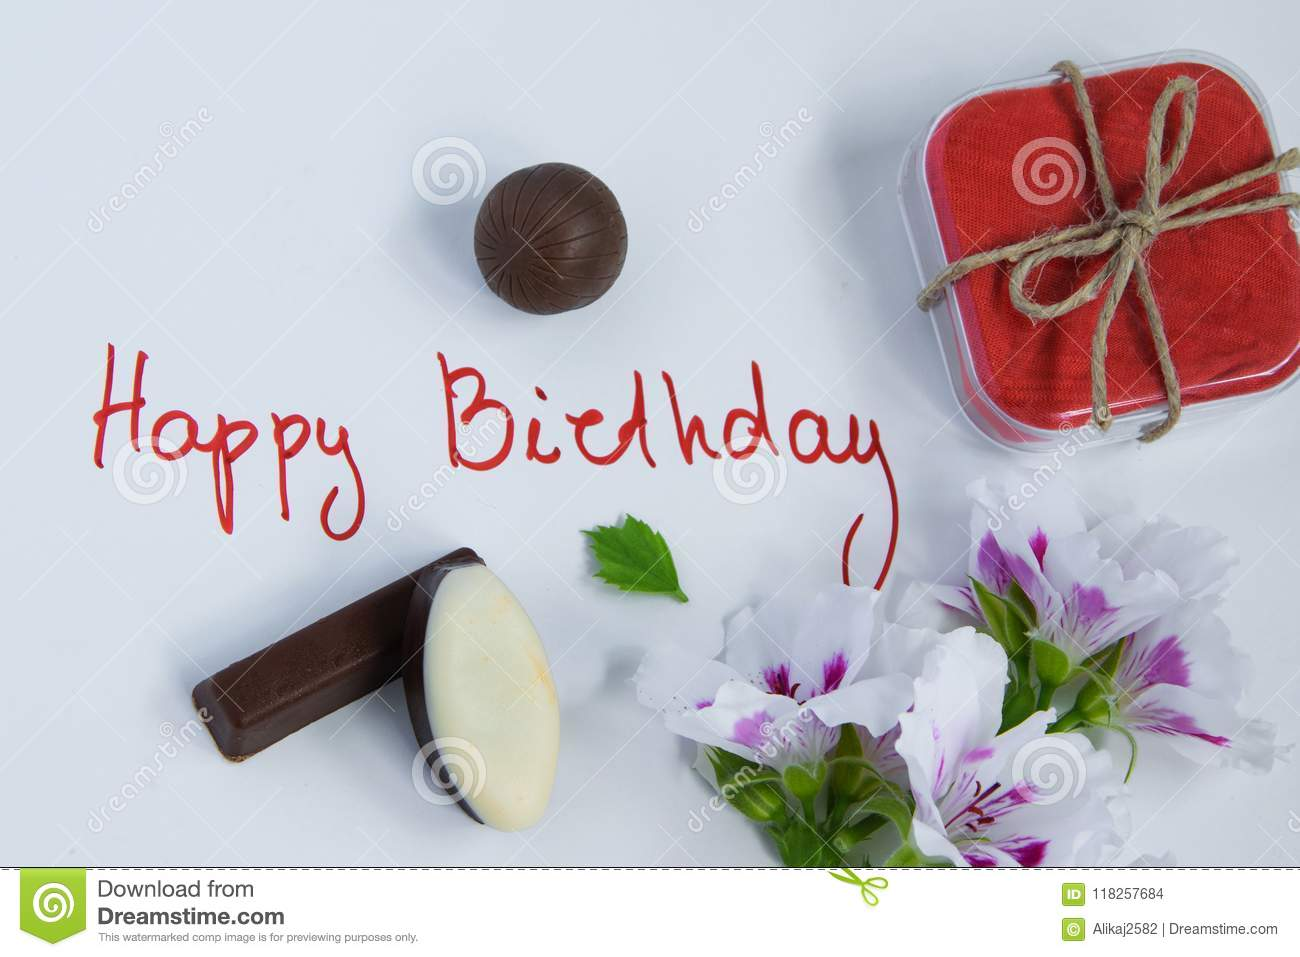 Happy Birthday Greeting Card With Gift Box Fresh Flowers And